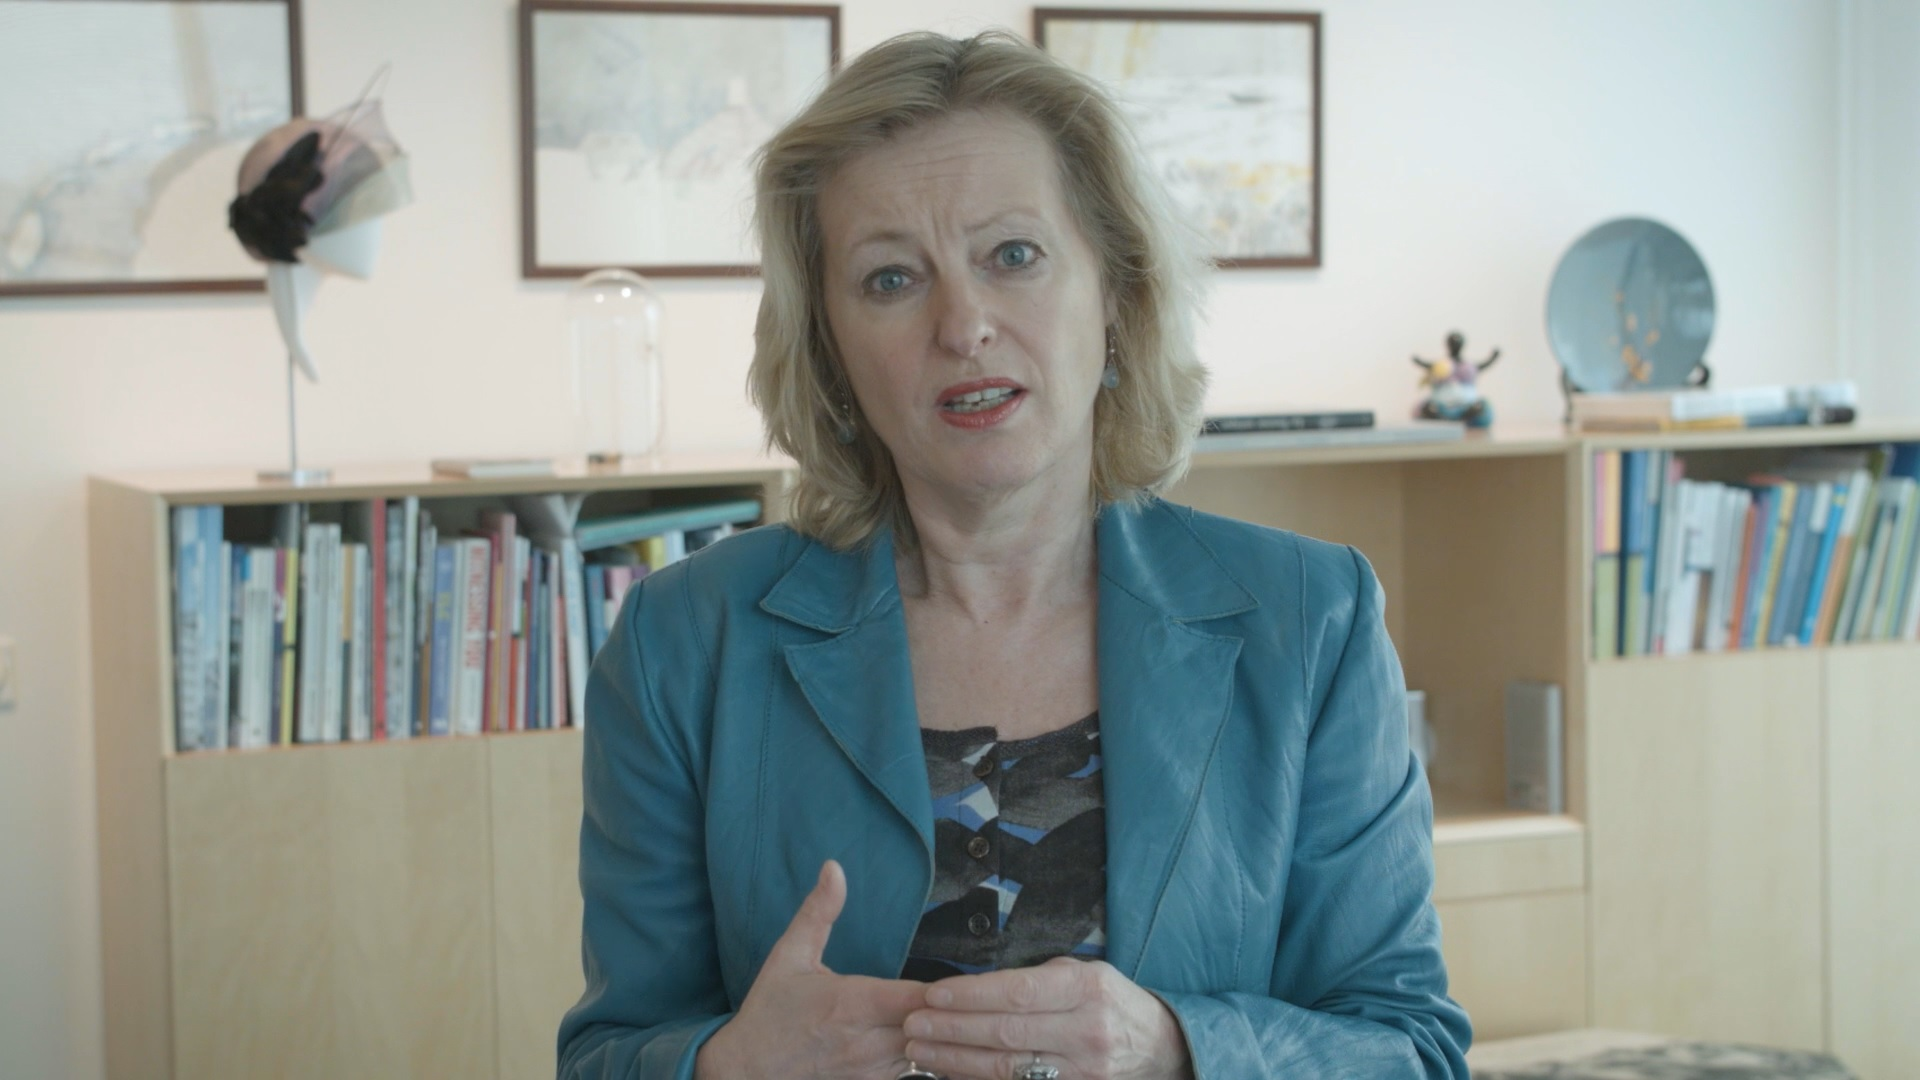 Afbeelding bij video: Minister Bussemaker over StudentLab